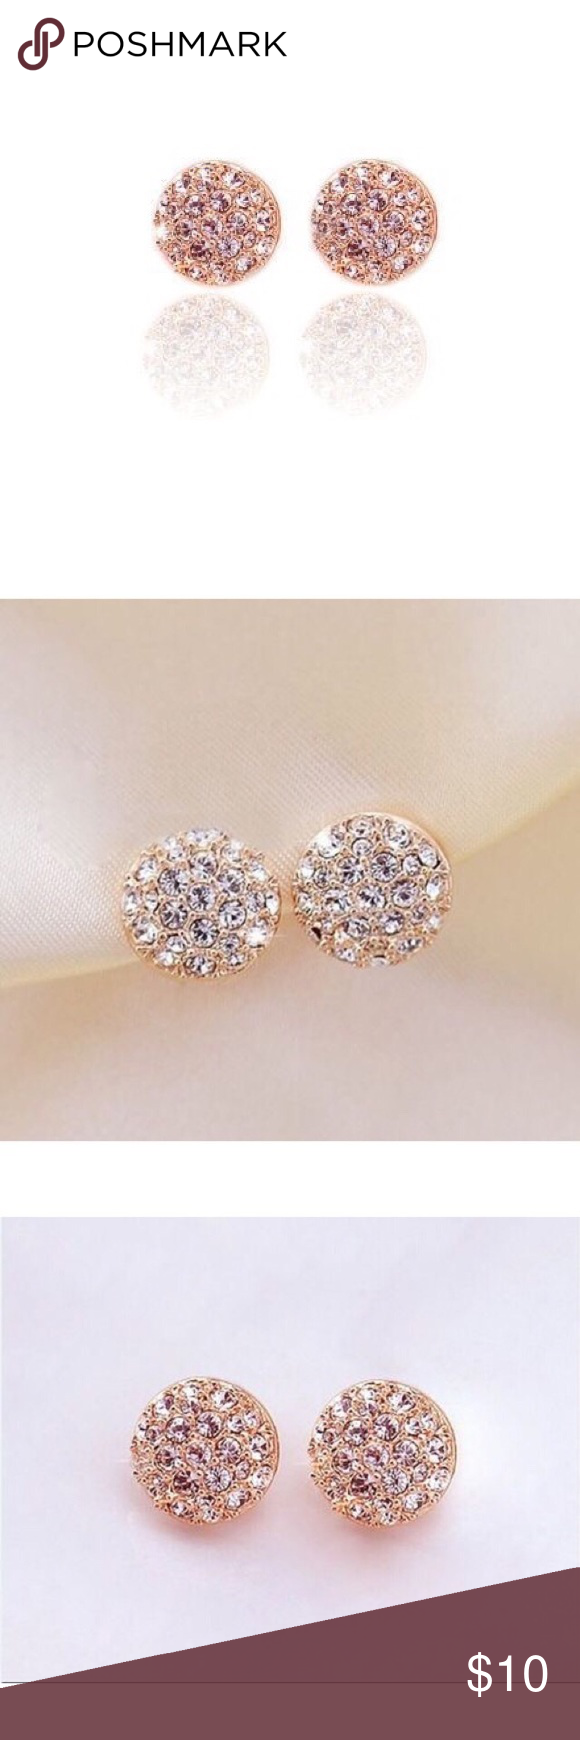 gold stud earrings new i flat tradesy disc kors crystal michael